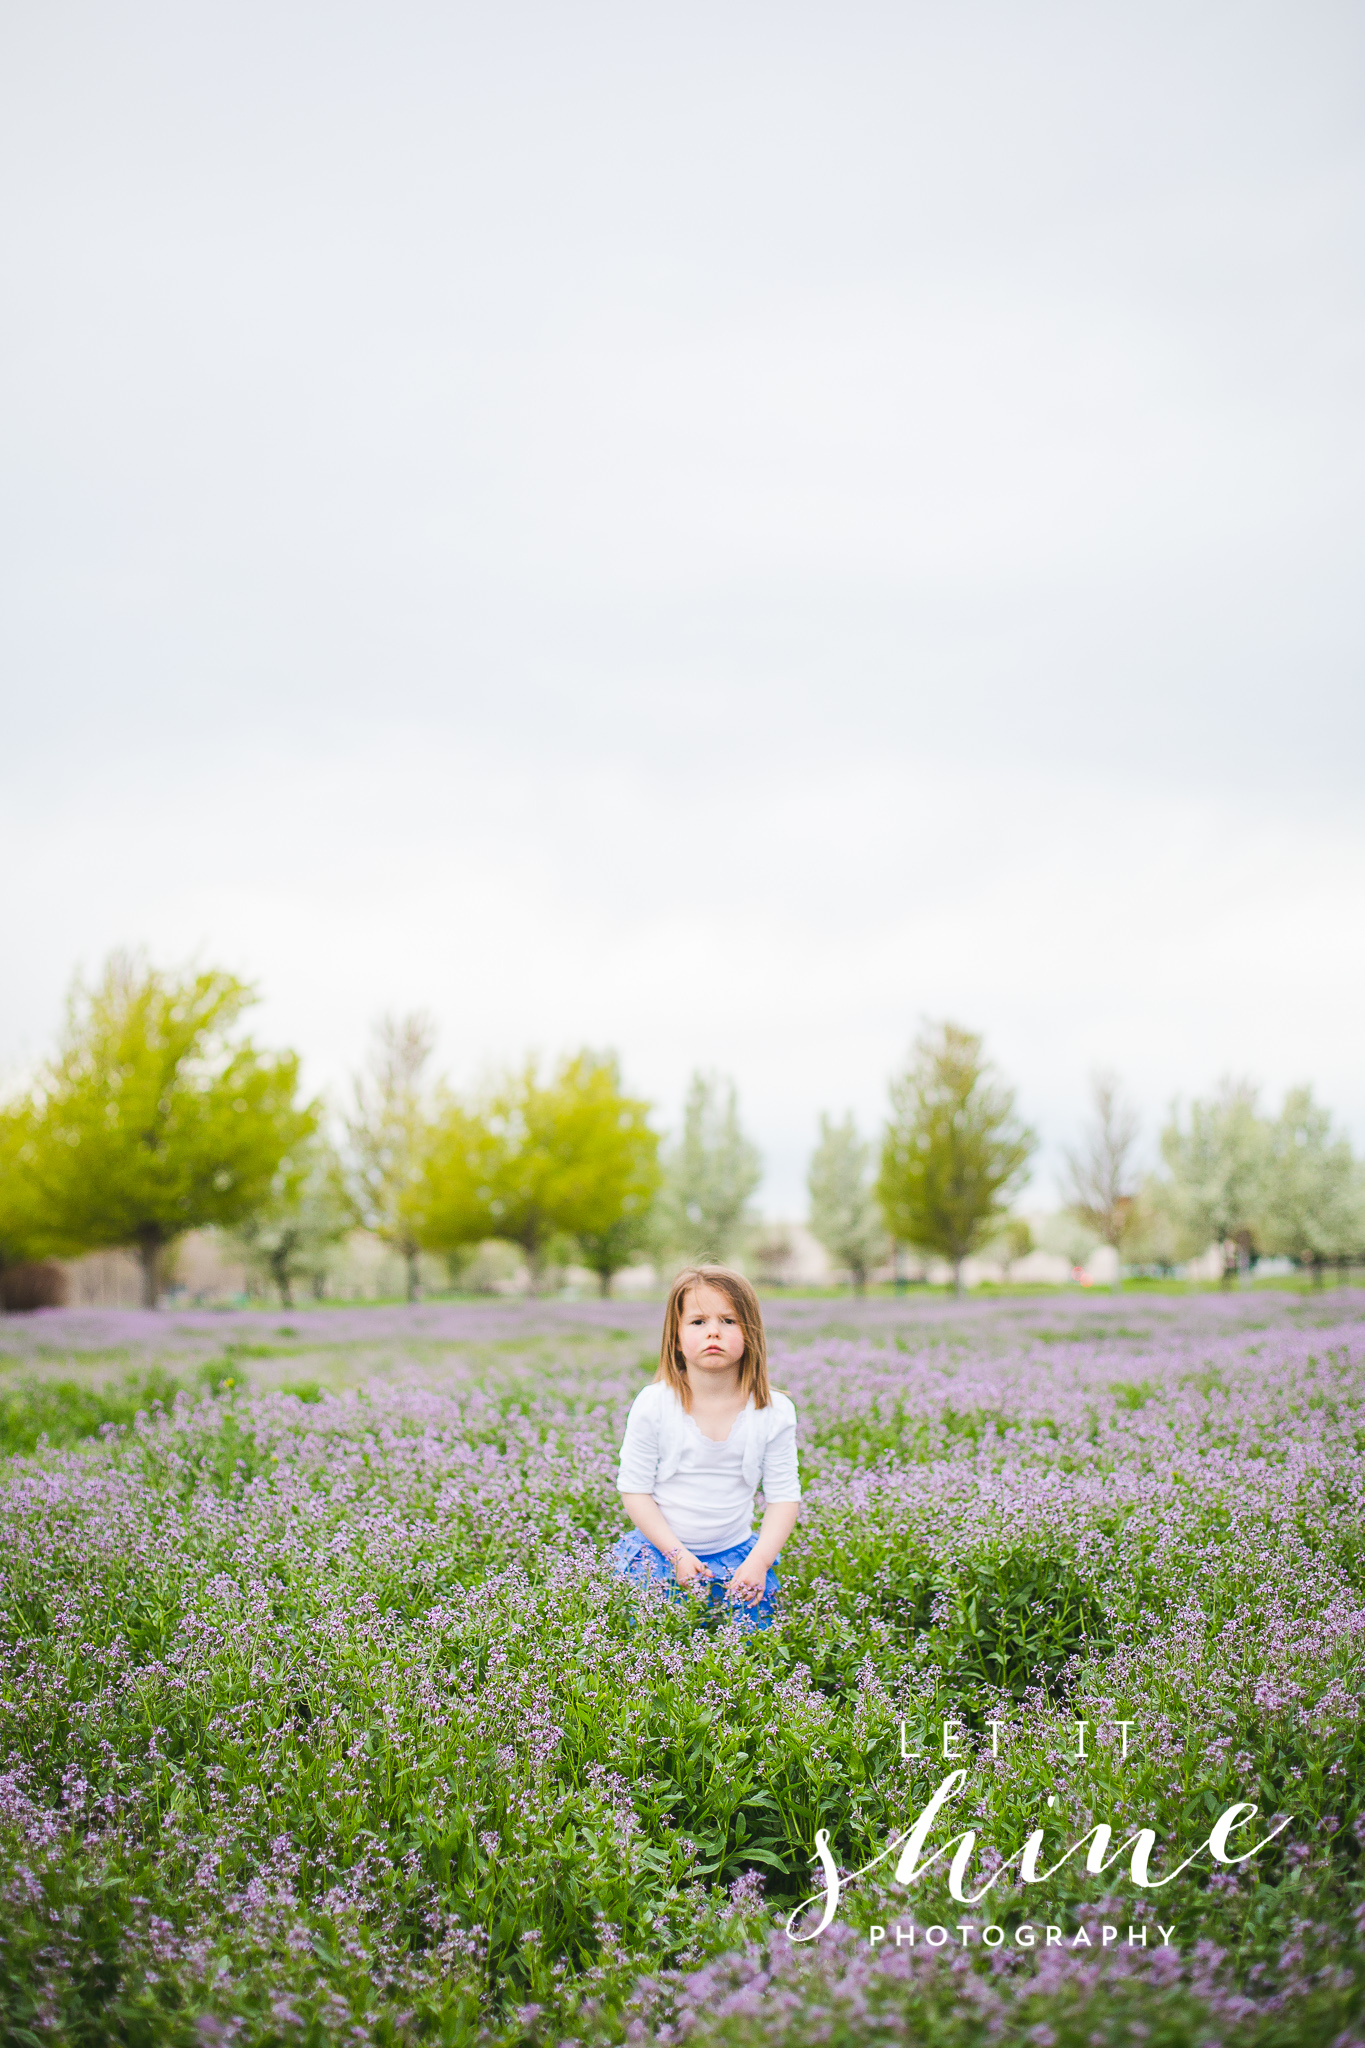 Mommy and Me Boise Lifestyle Photography-5290.jpg